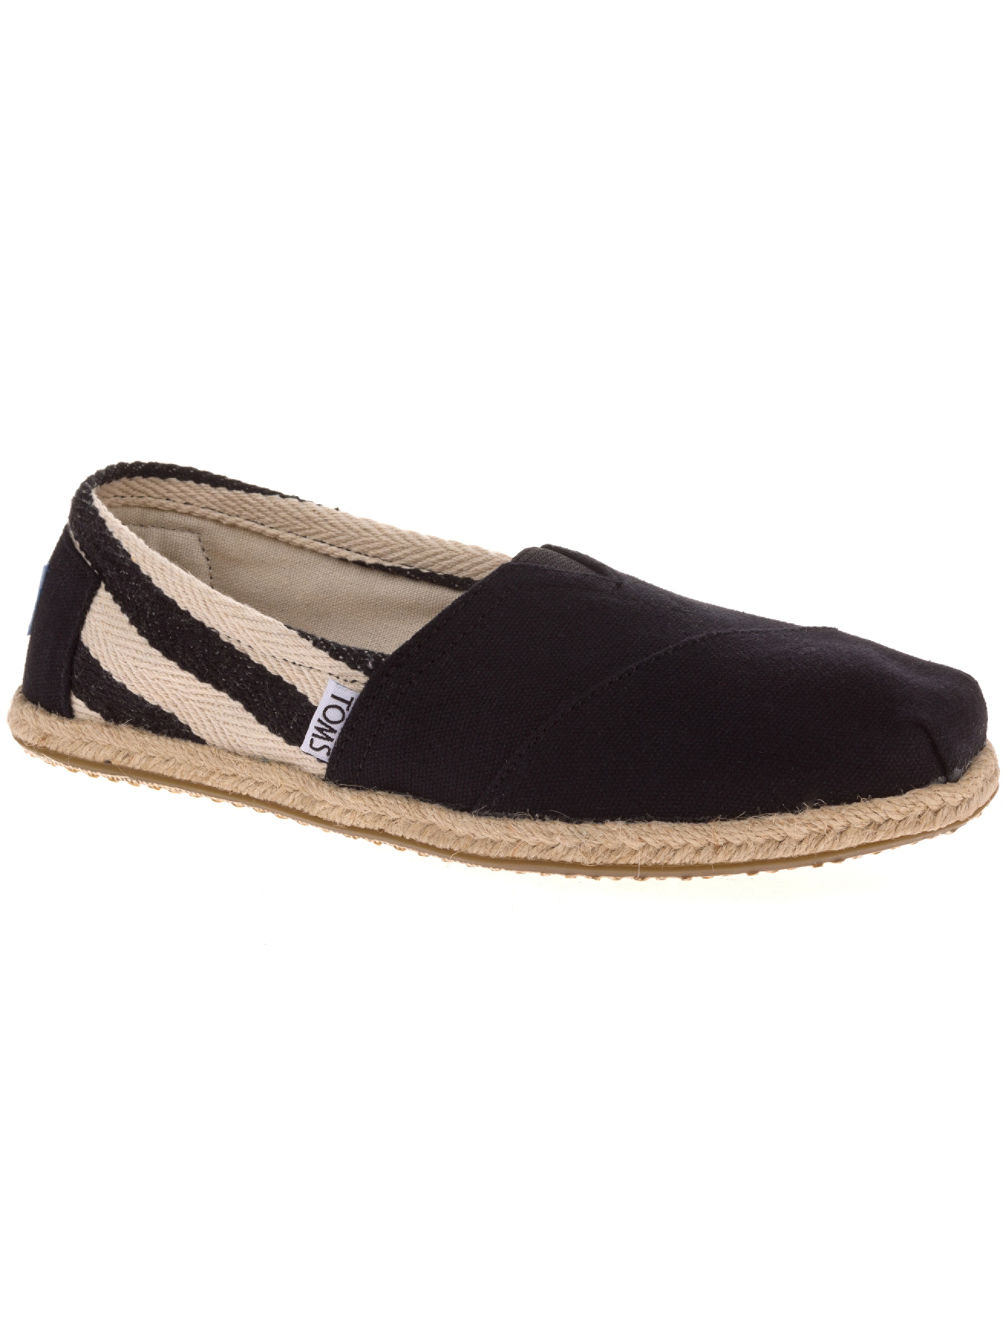 toms-university-slippers-women